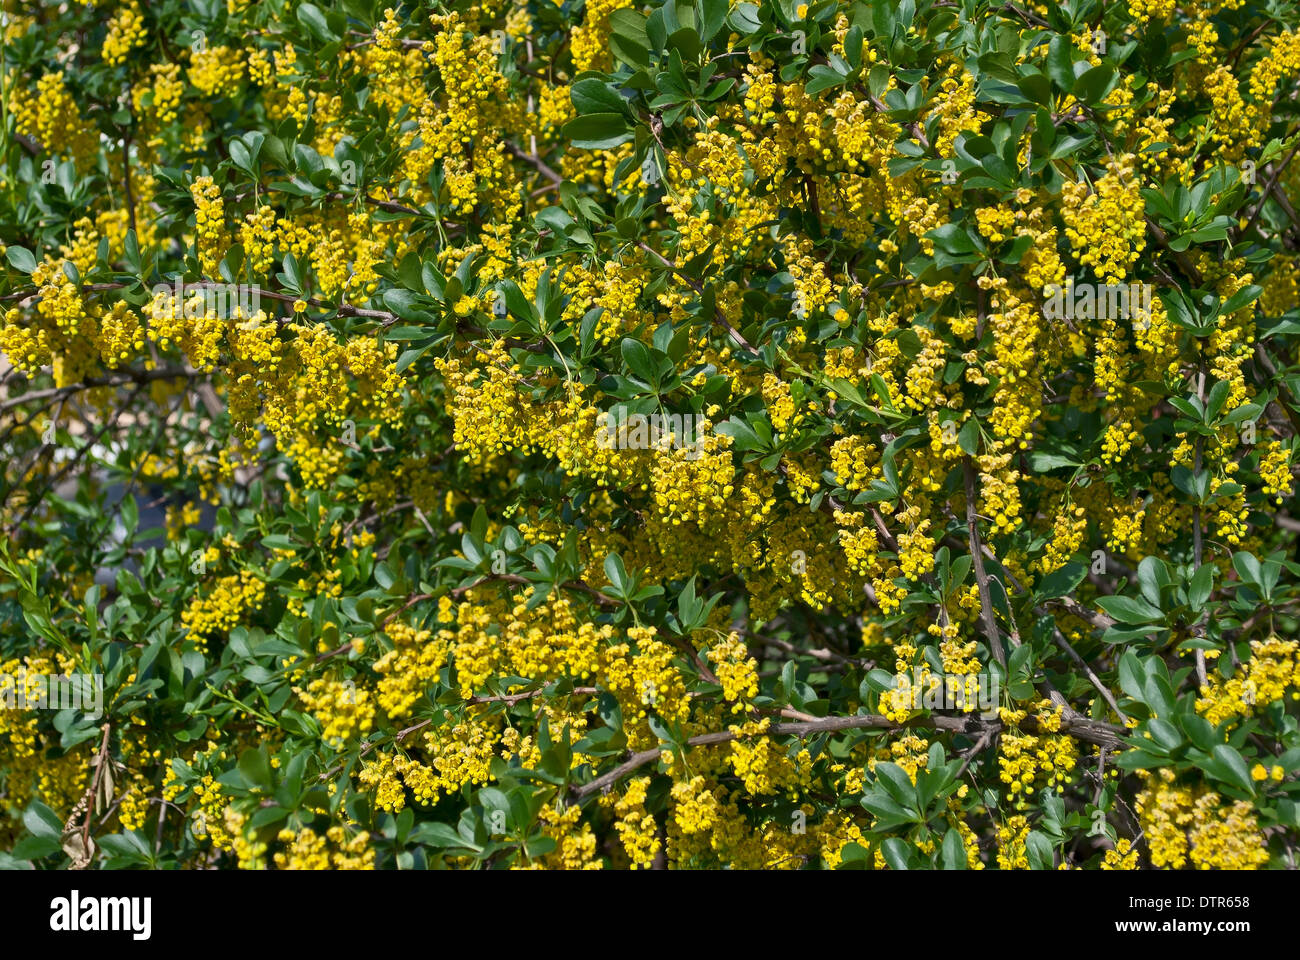 Background Of Yellow Flowers With Small Petals Stock Photo 66892596